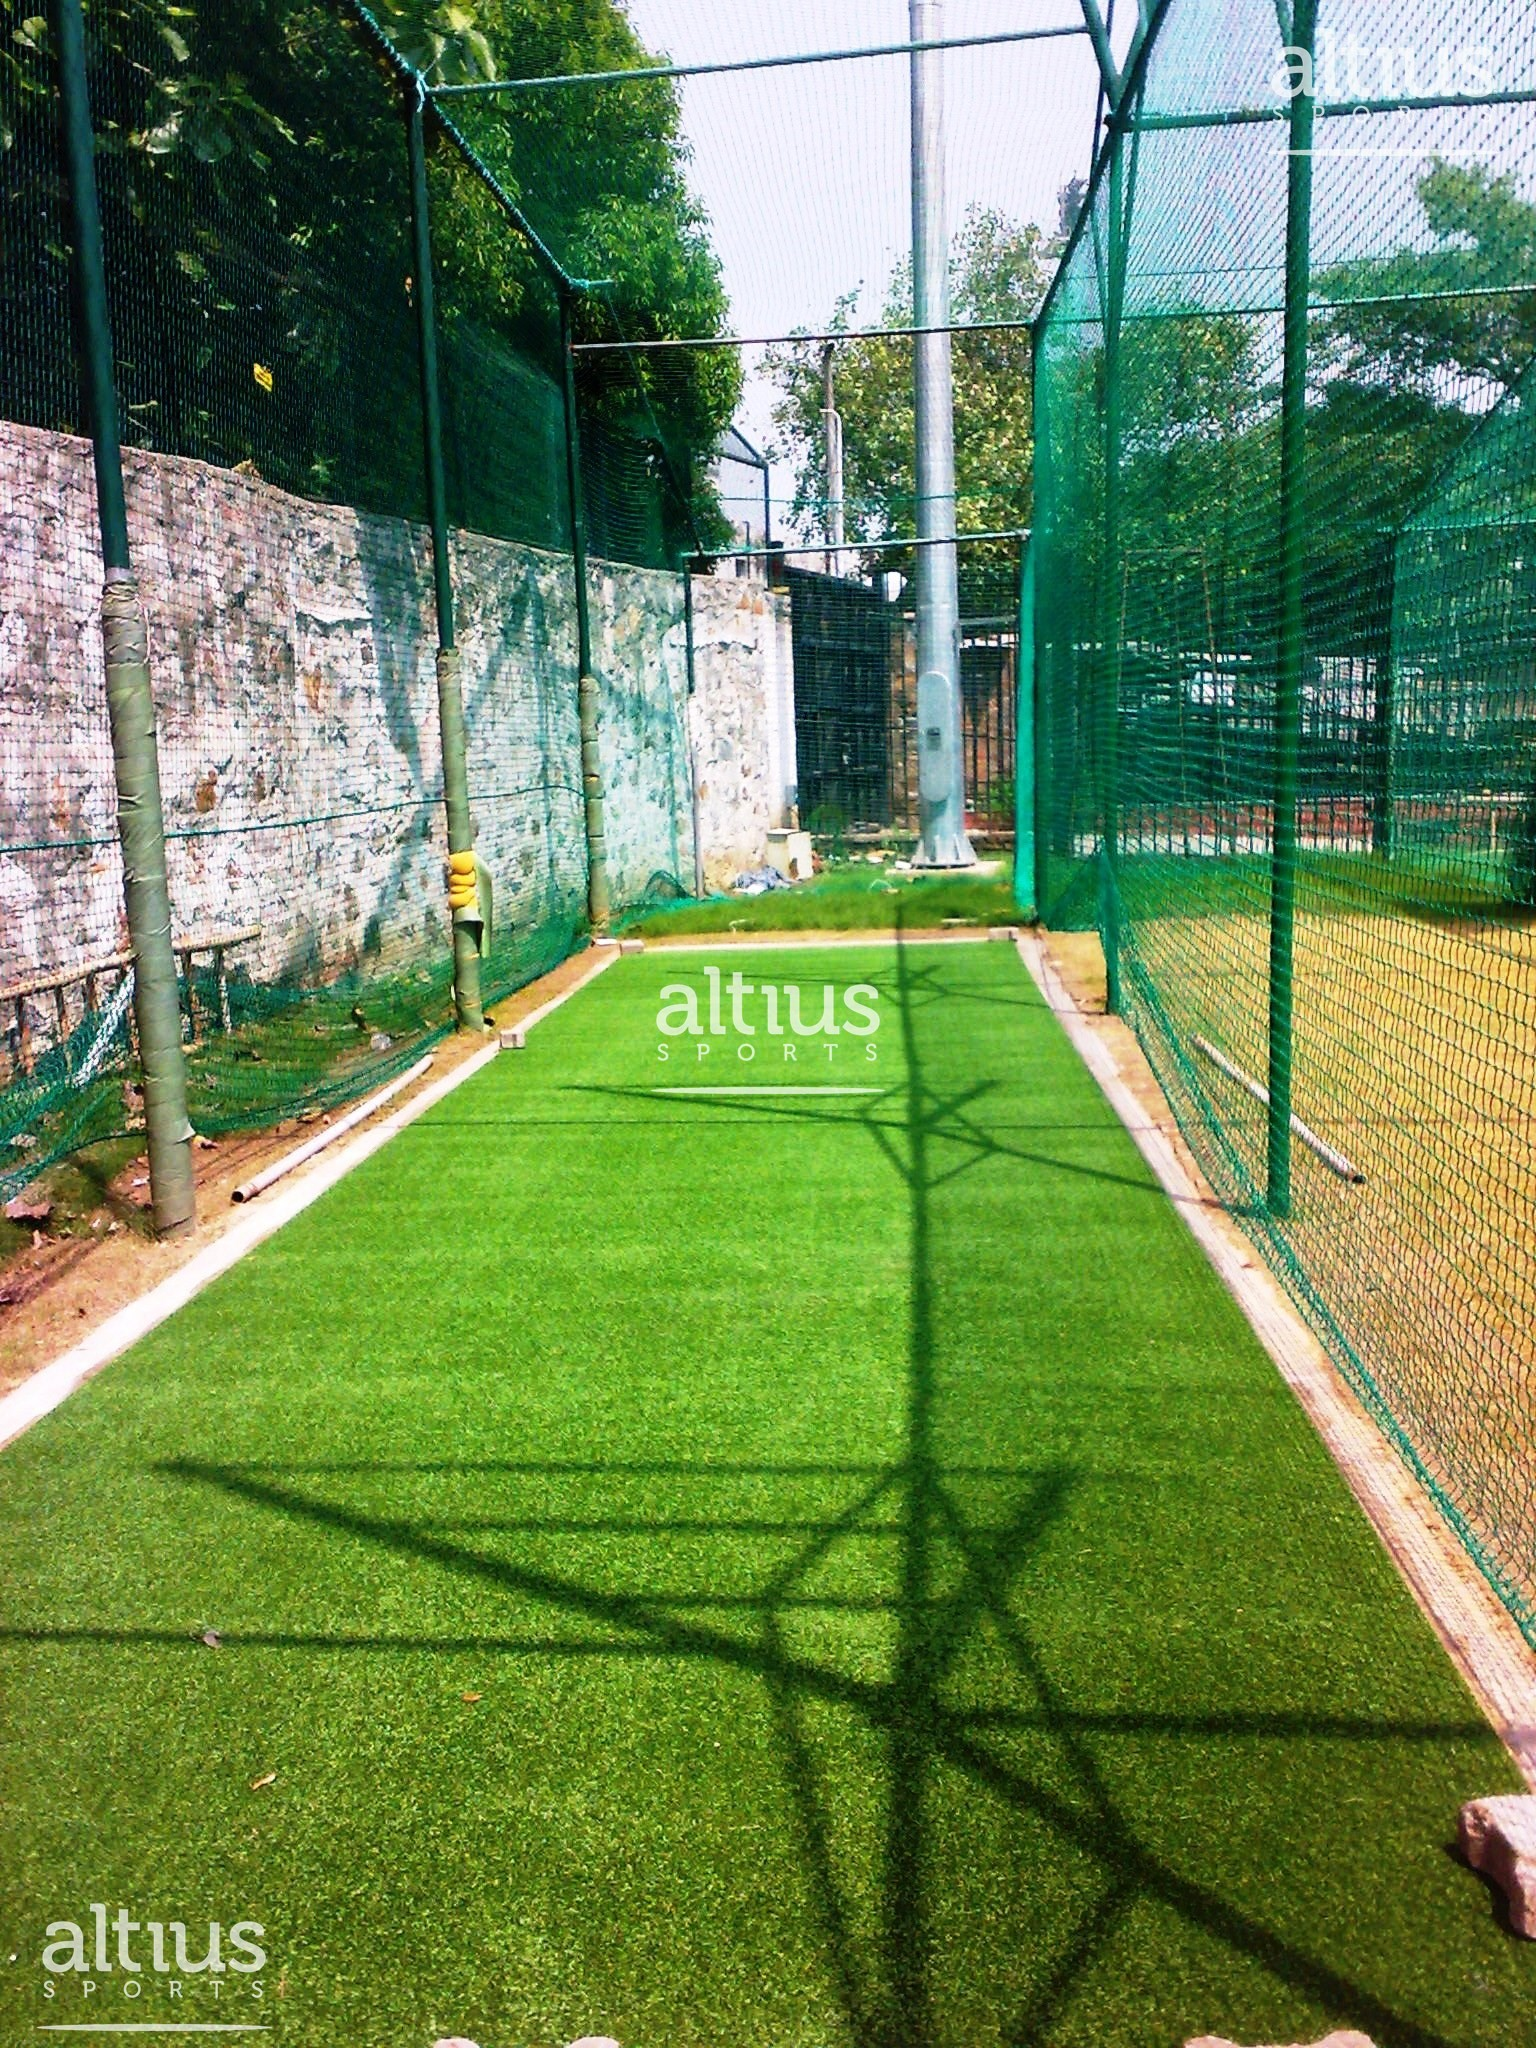 altius-cricket-installation